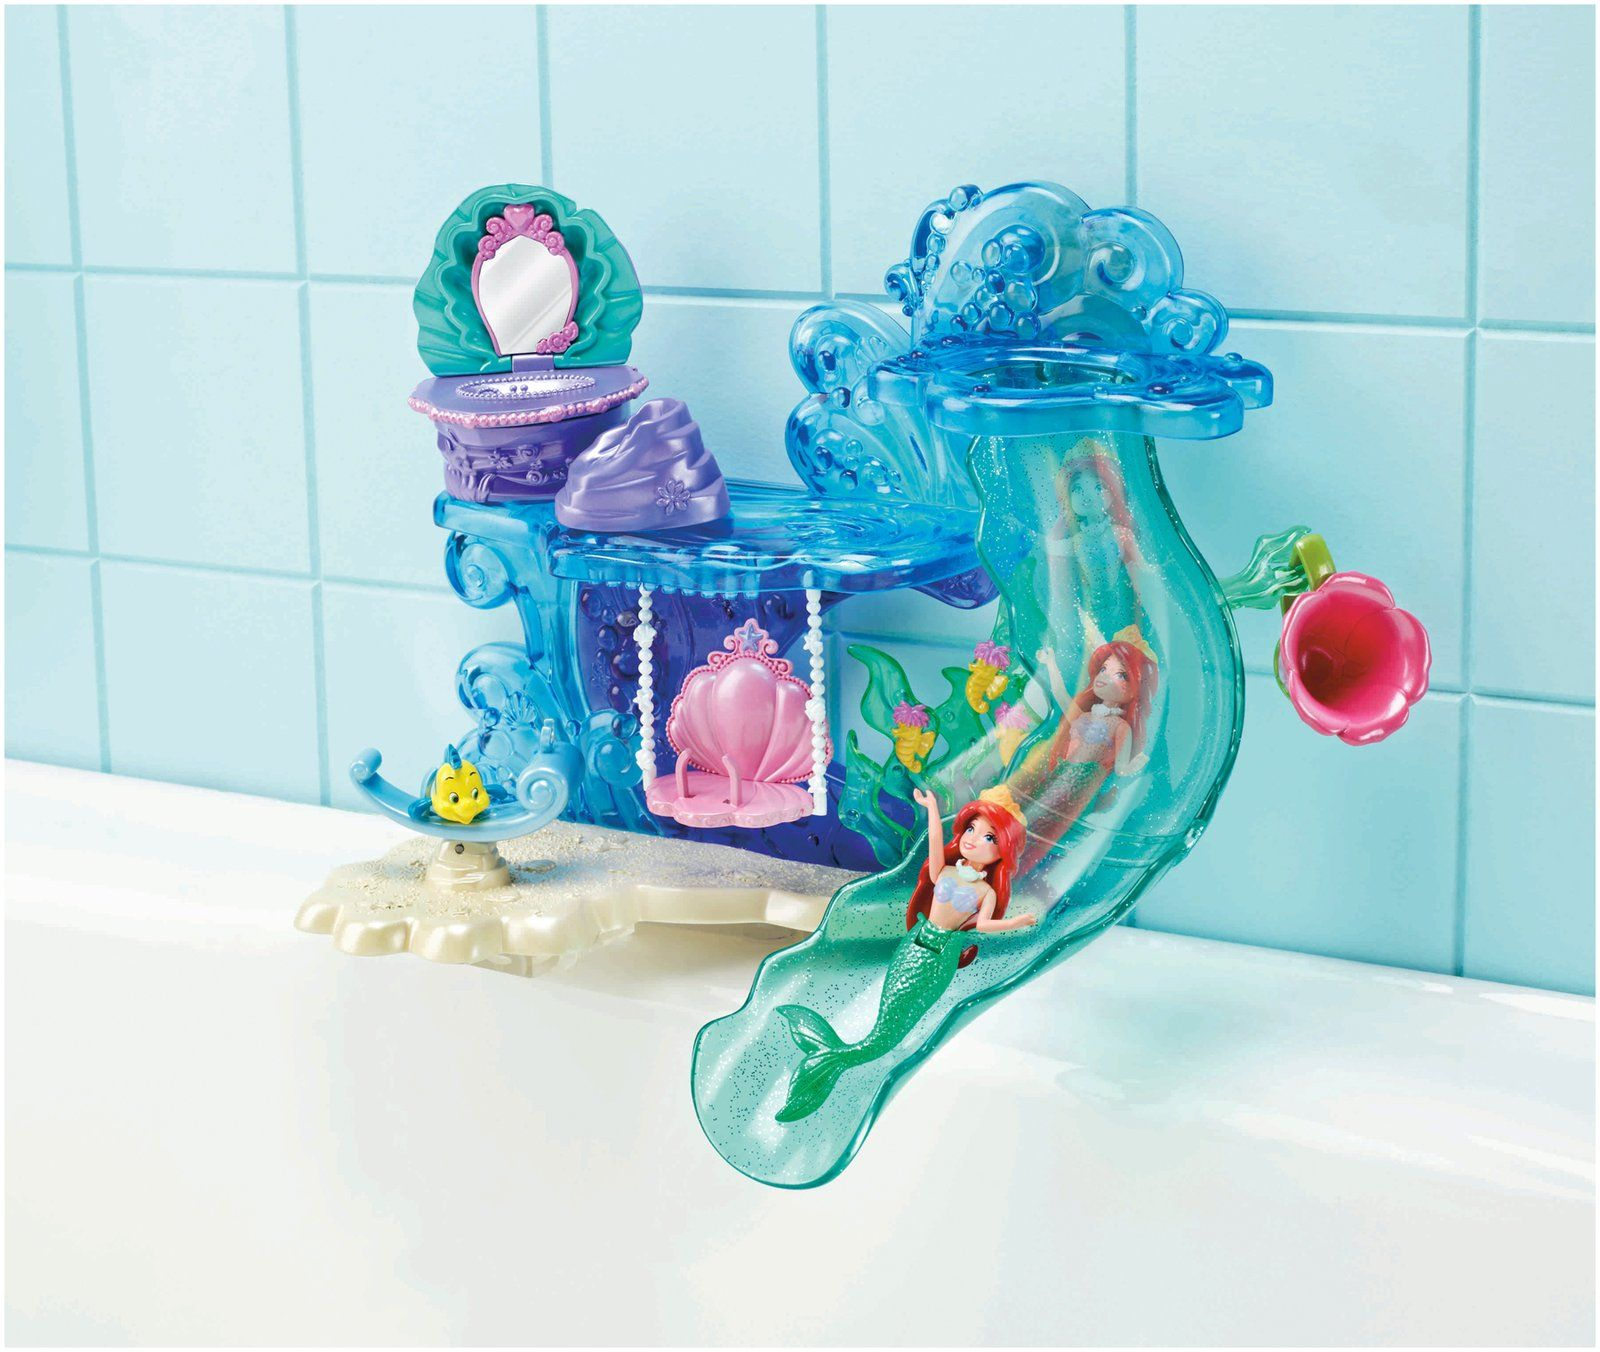 Disney Princesses Bath Toys Ariel Yahoo Search Results Mermaid Bathroom Princess Bathroom Little Mermaid Bathroom